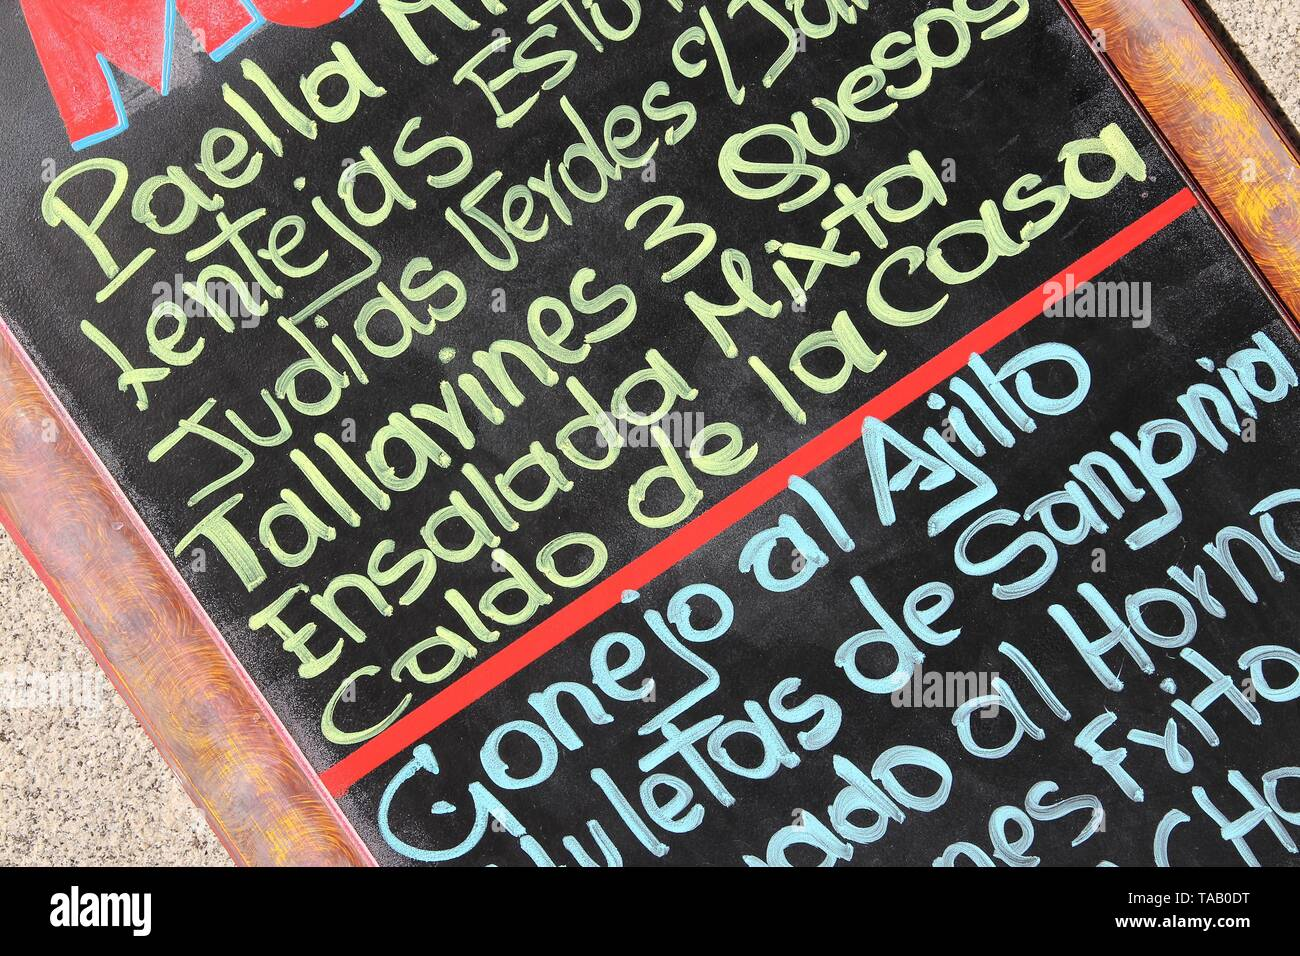 Restaurant Menu With Typical Spanish Cuisine Outdoor Bar In Madrid Spain Generic Dish Names Stock Photo Alamy